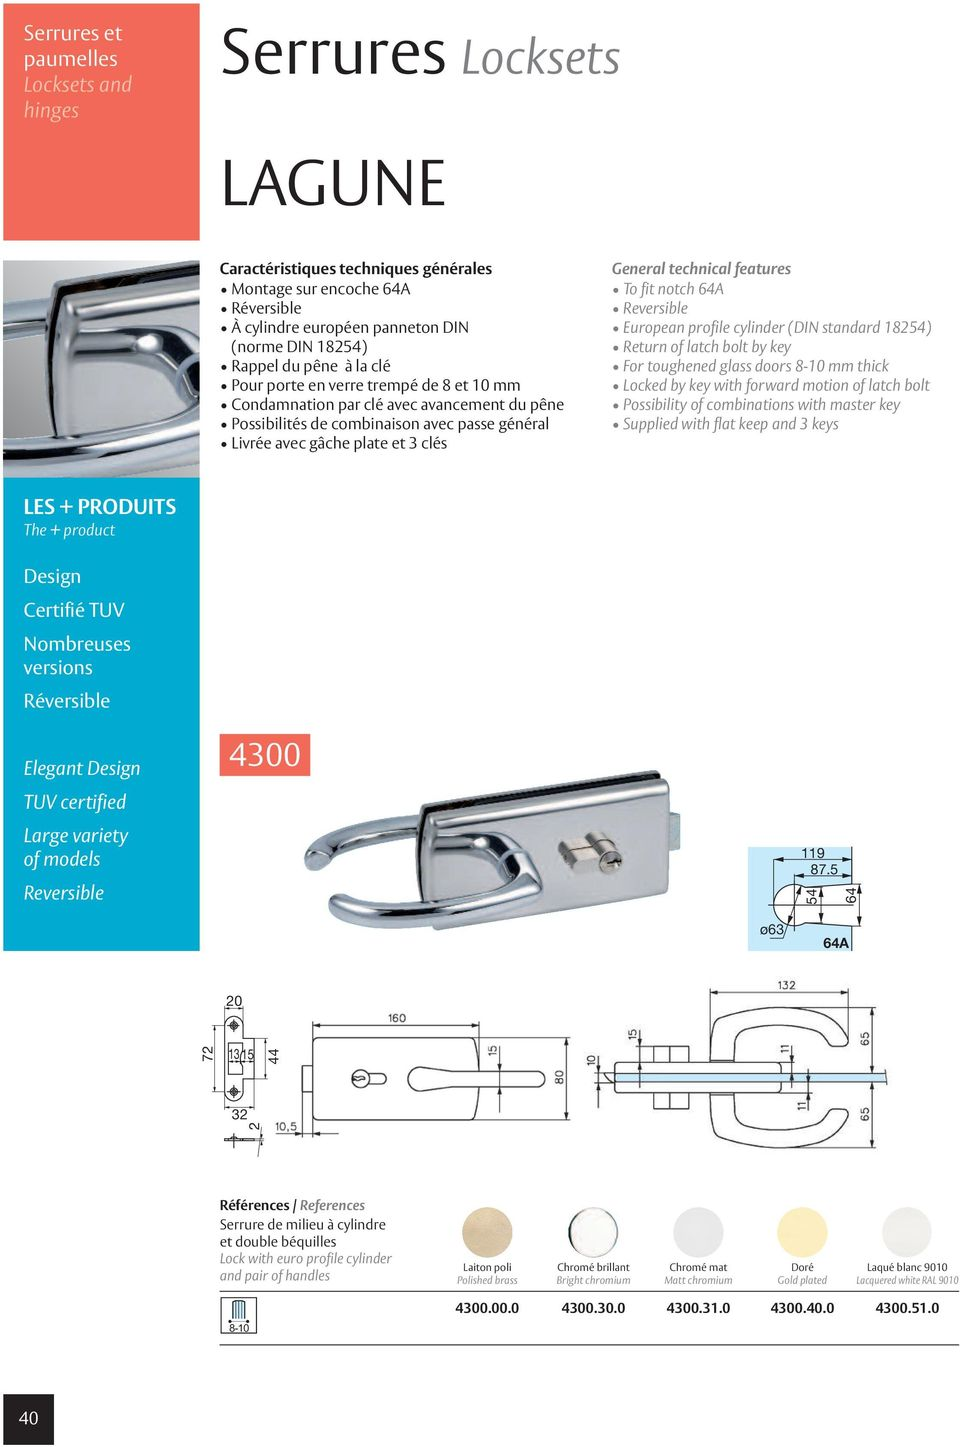 cylinder (DIN standard 1) Return of latch bolt by key For toughened glass doors - mm thick Locked by key with forward motion of latch bolt Possibility of combinations with master key Supplied with